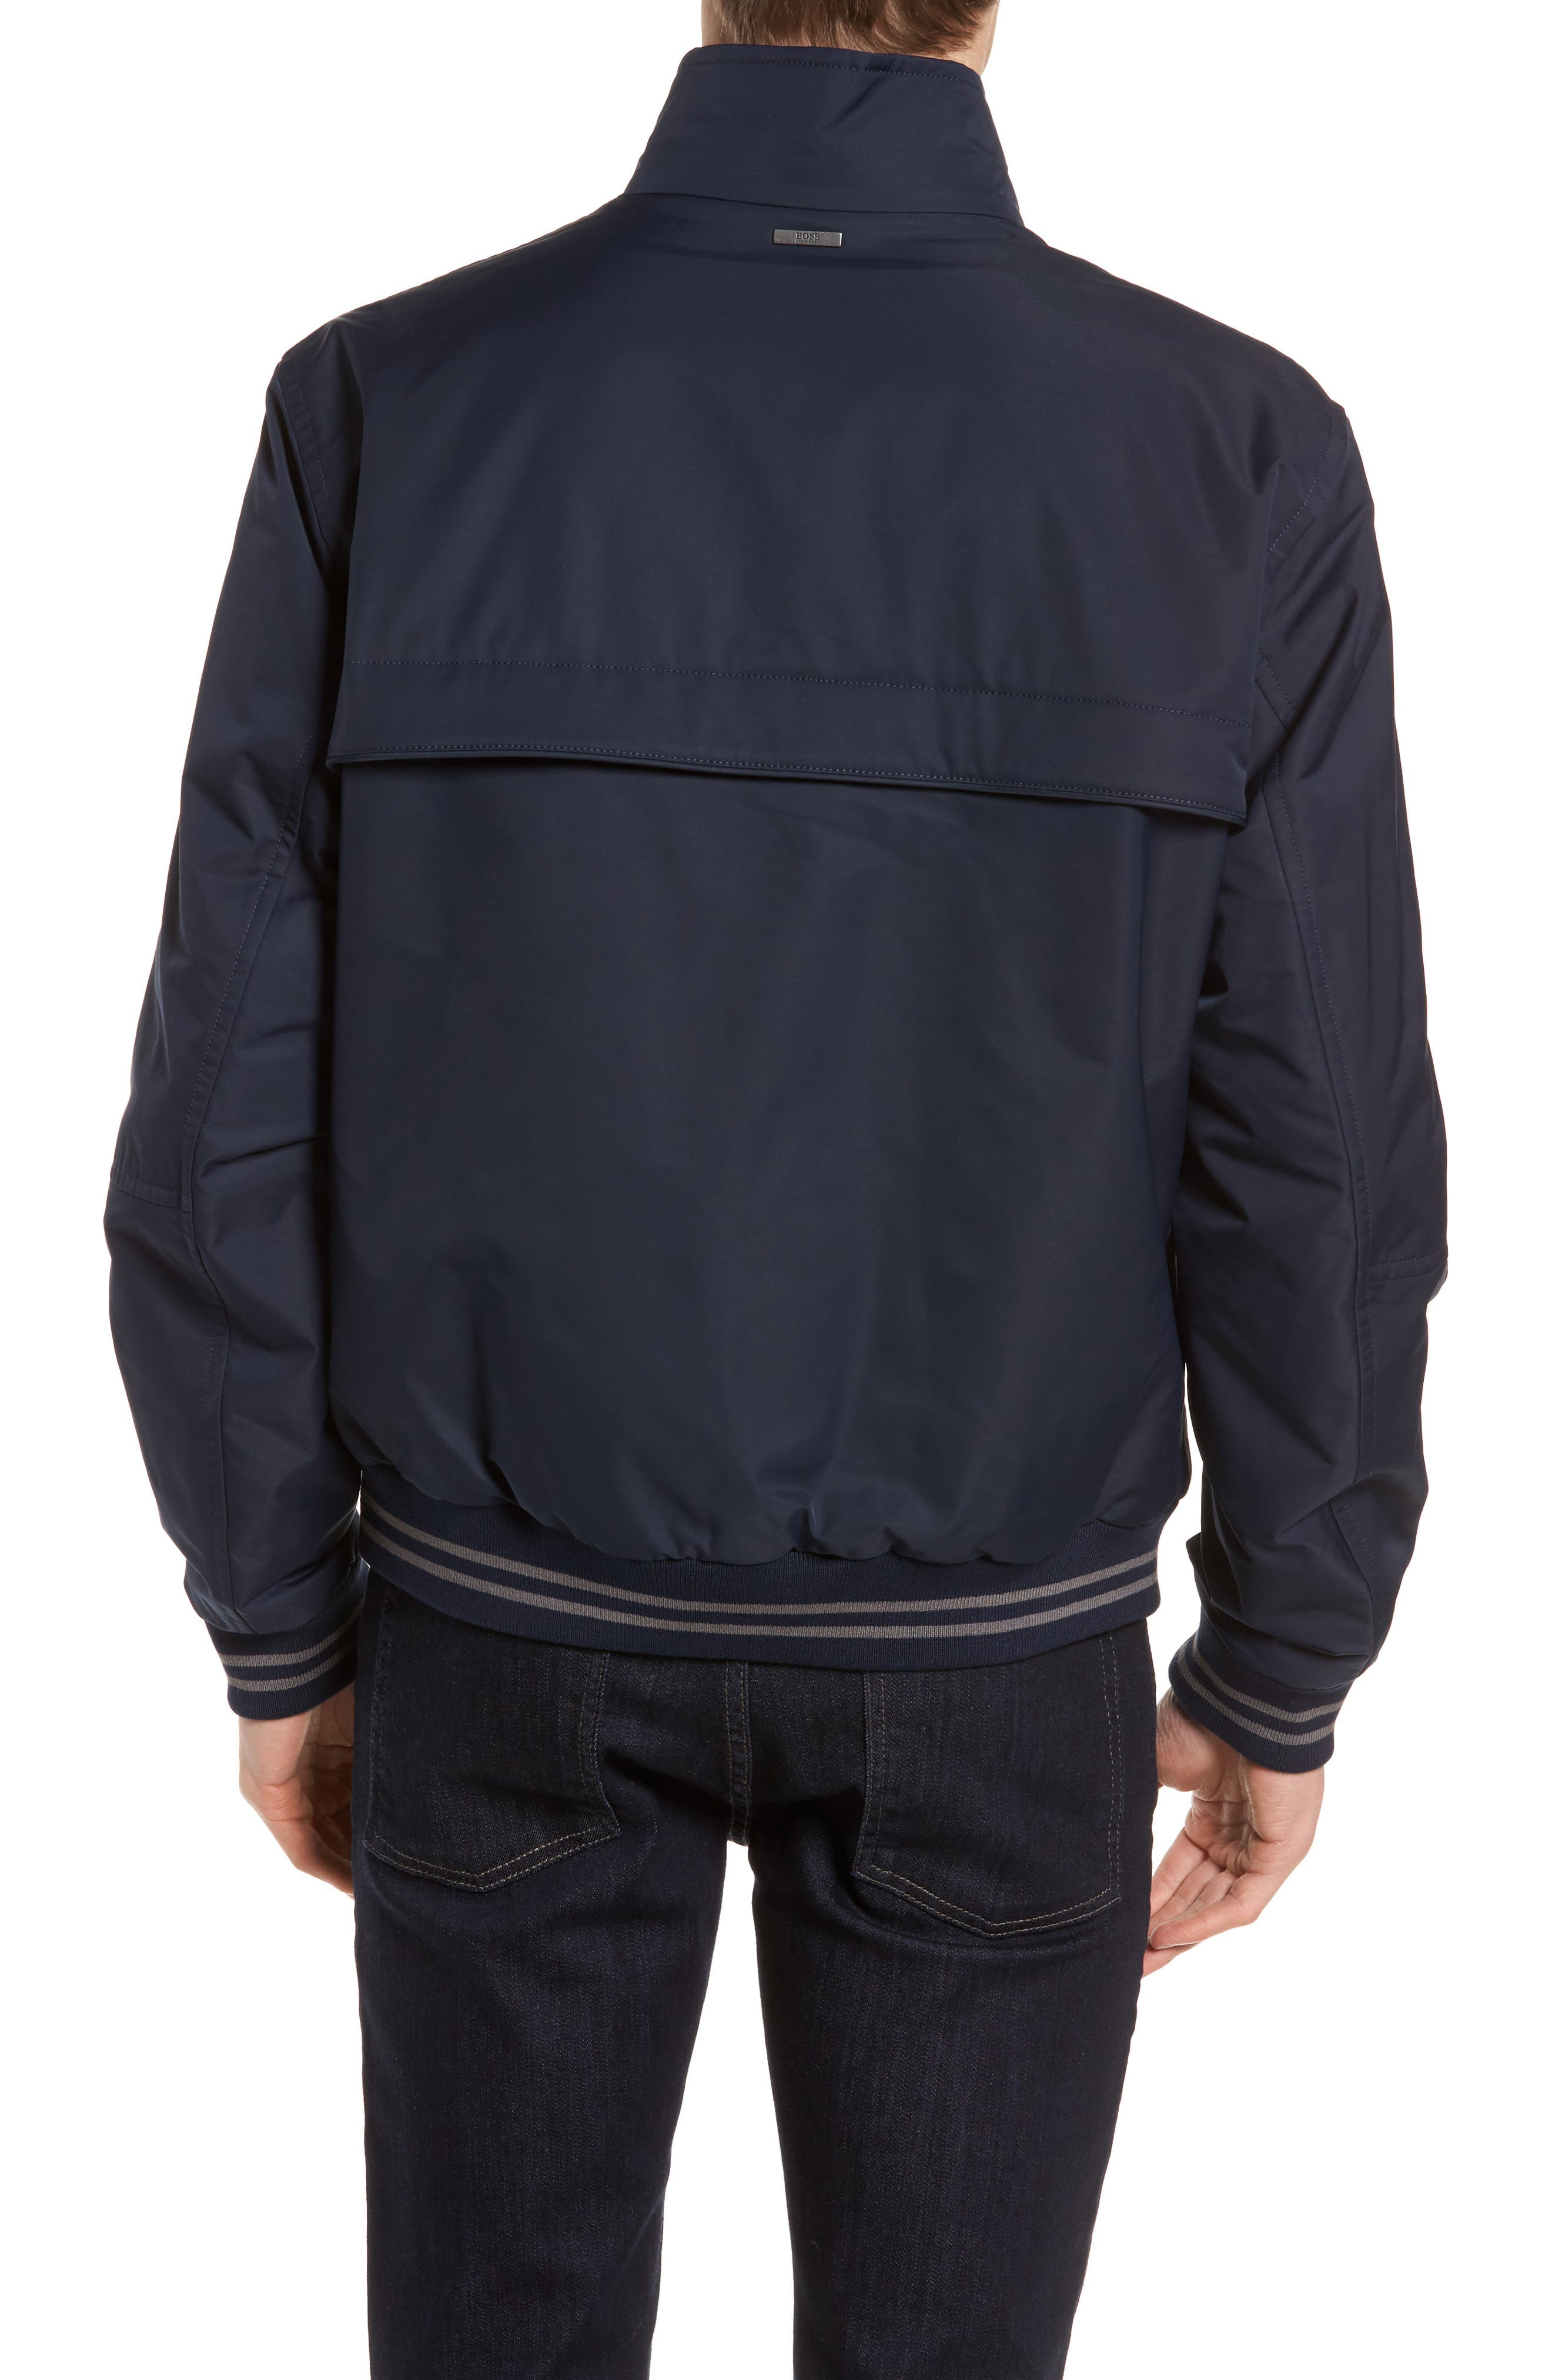 Cossito Regular Fit Bomber Jacket,                             Alternate thumbnail 2, color,                             410